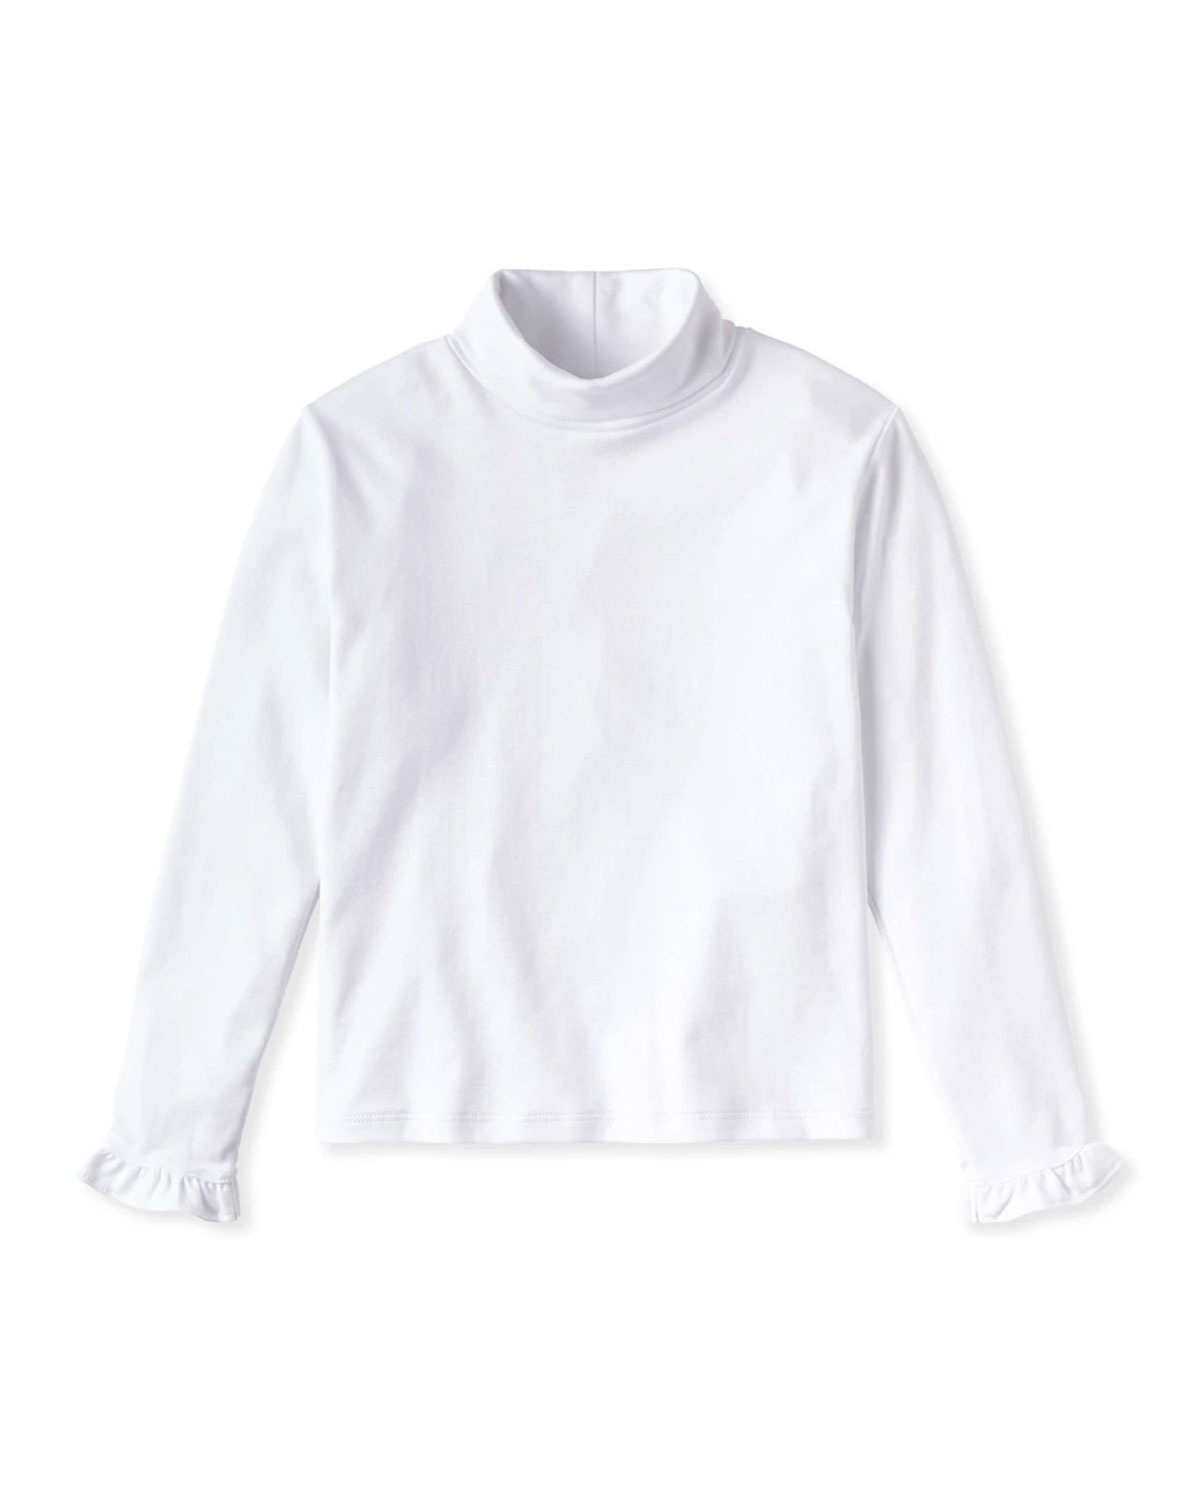 Classic Prep Childrenswear Girl's Eloise Ruffle-Sleeve Turtleneck Top, Size 6M-8